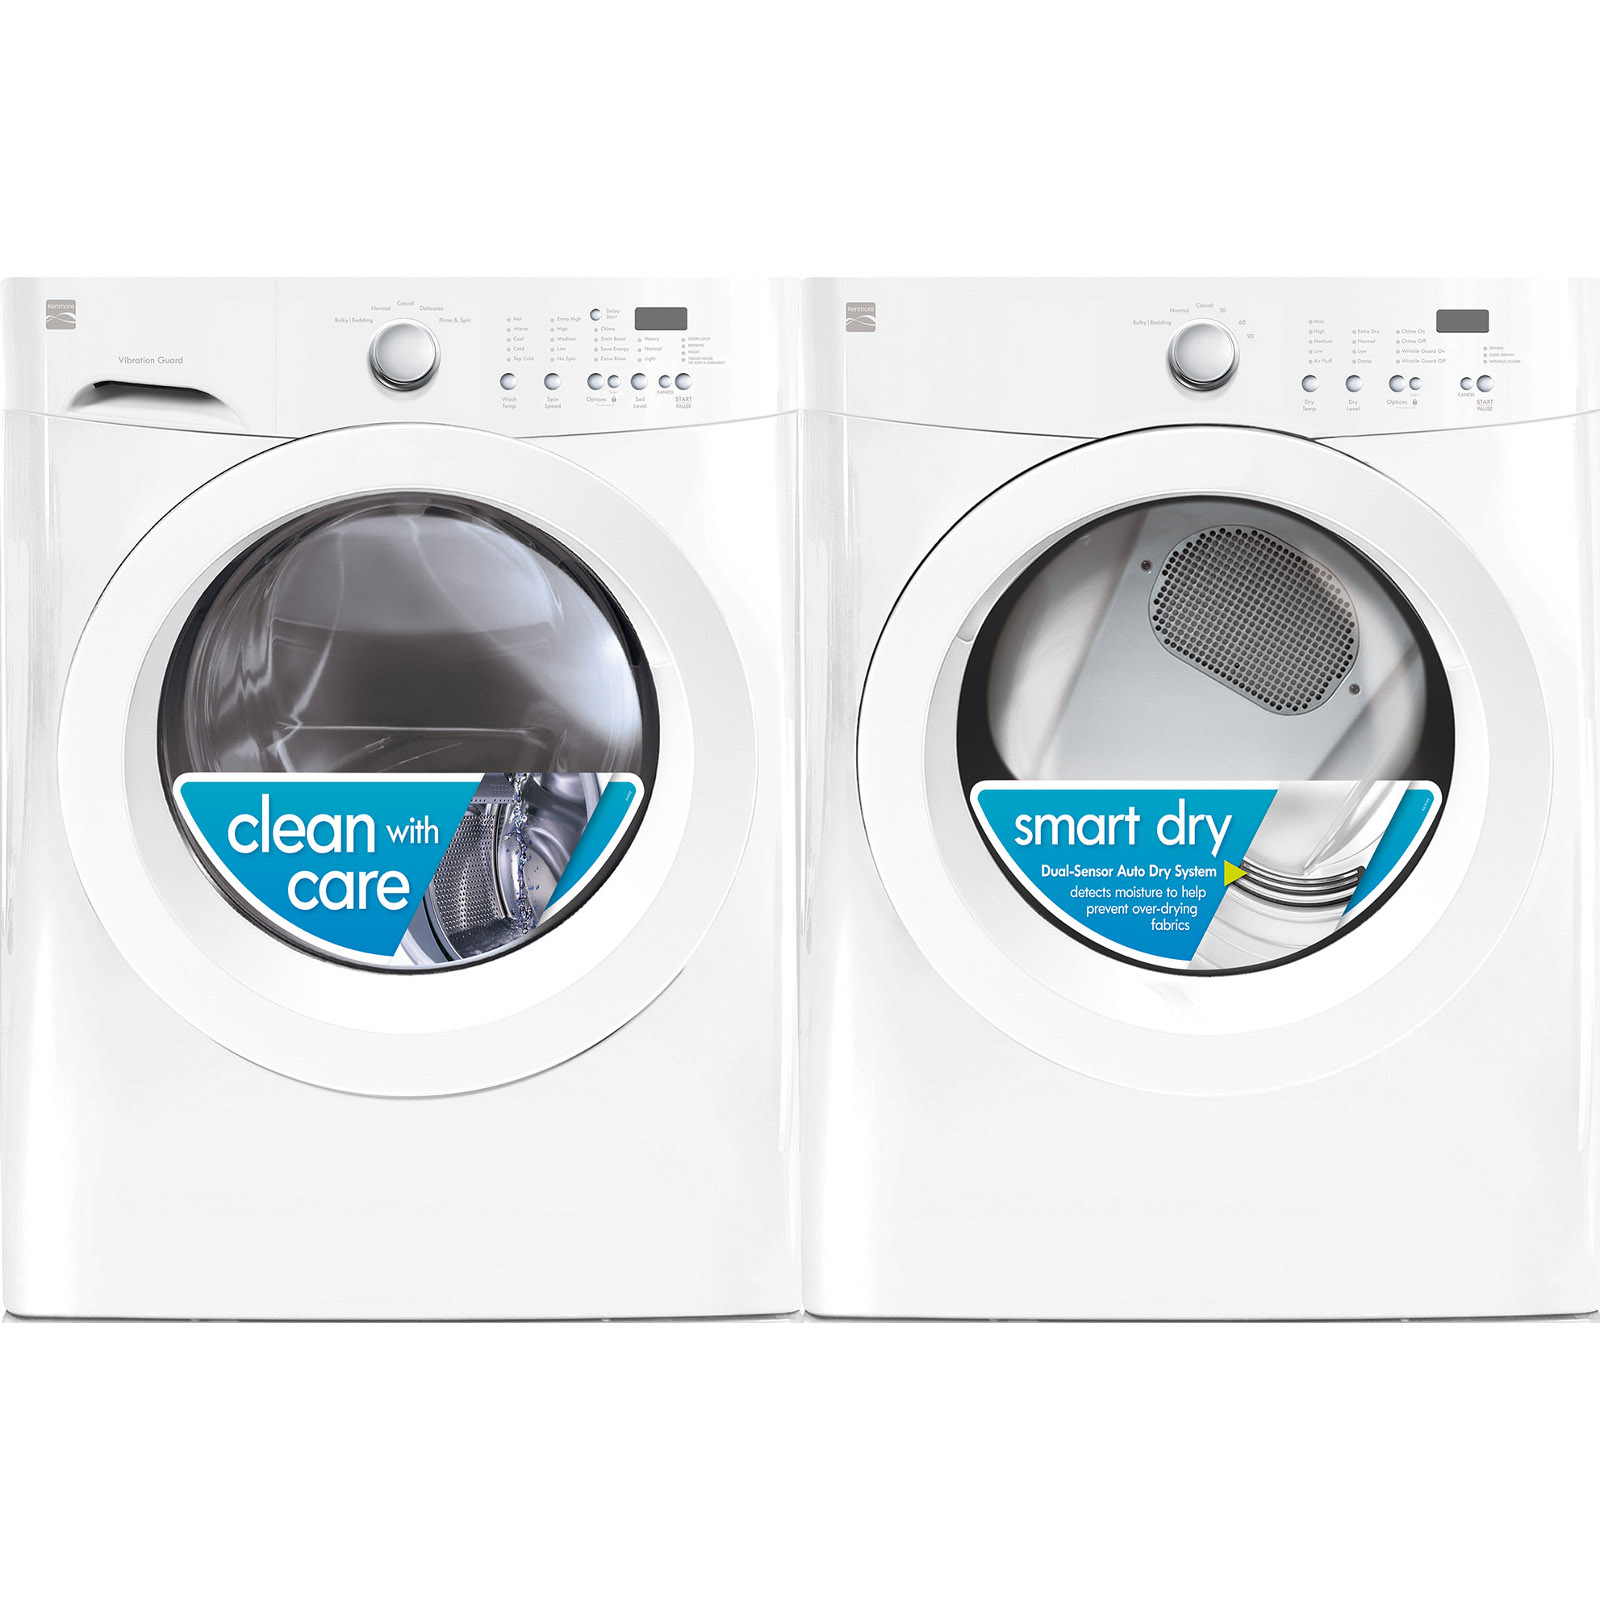 Kenmore 41122 3.9 cu. ft. Front-Load Washer - White